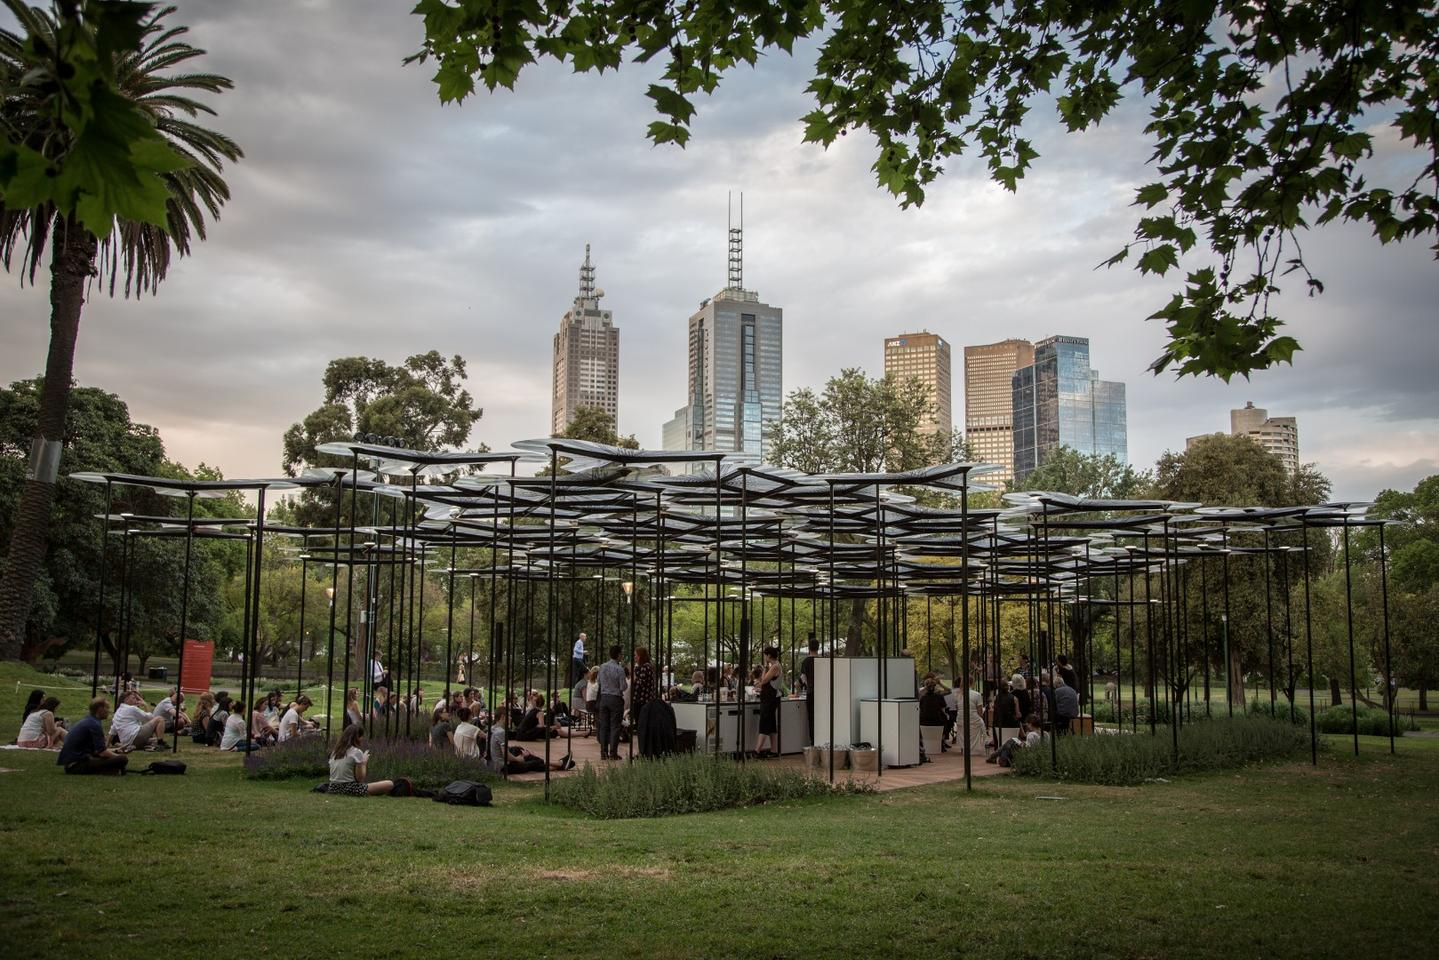 Melbourne's plentiful parklands have no shortage of shady trees under which to relax on a balmy summer evening, but a new addition to city's gardens offers a different way to wind down.